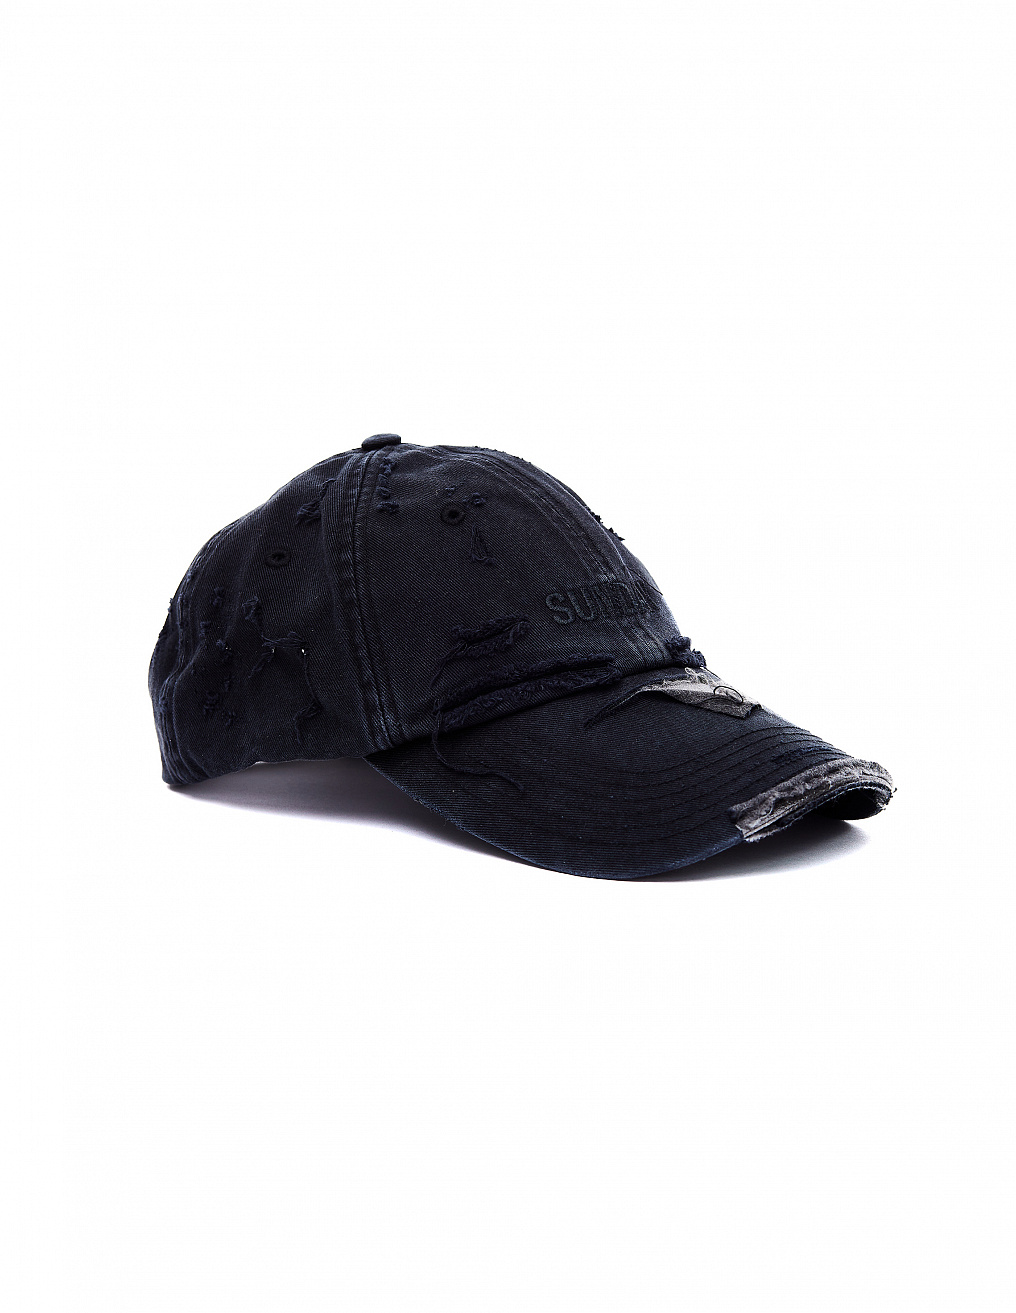 Sunday Distressed Cap Vetements - buy